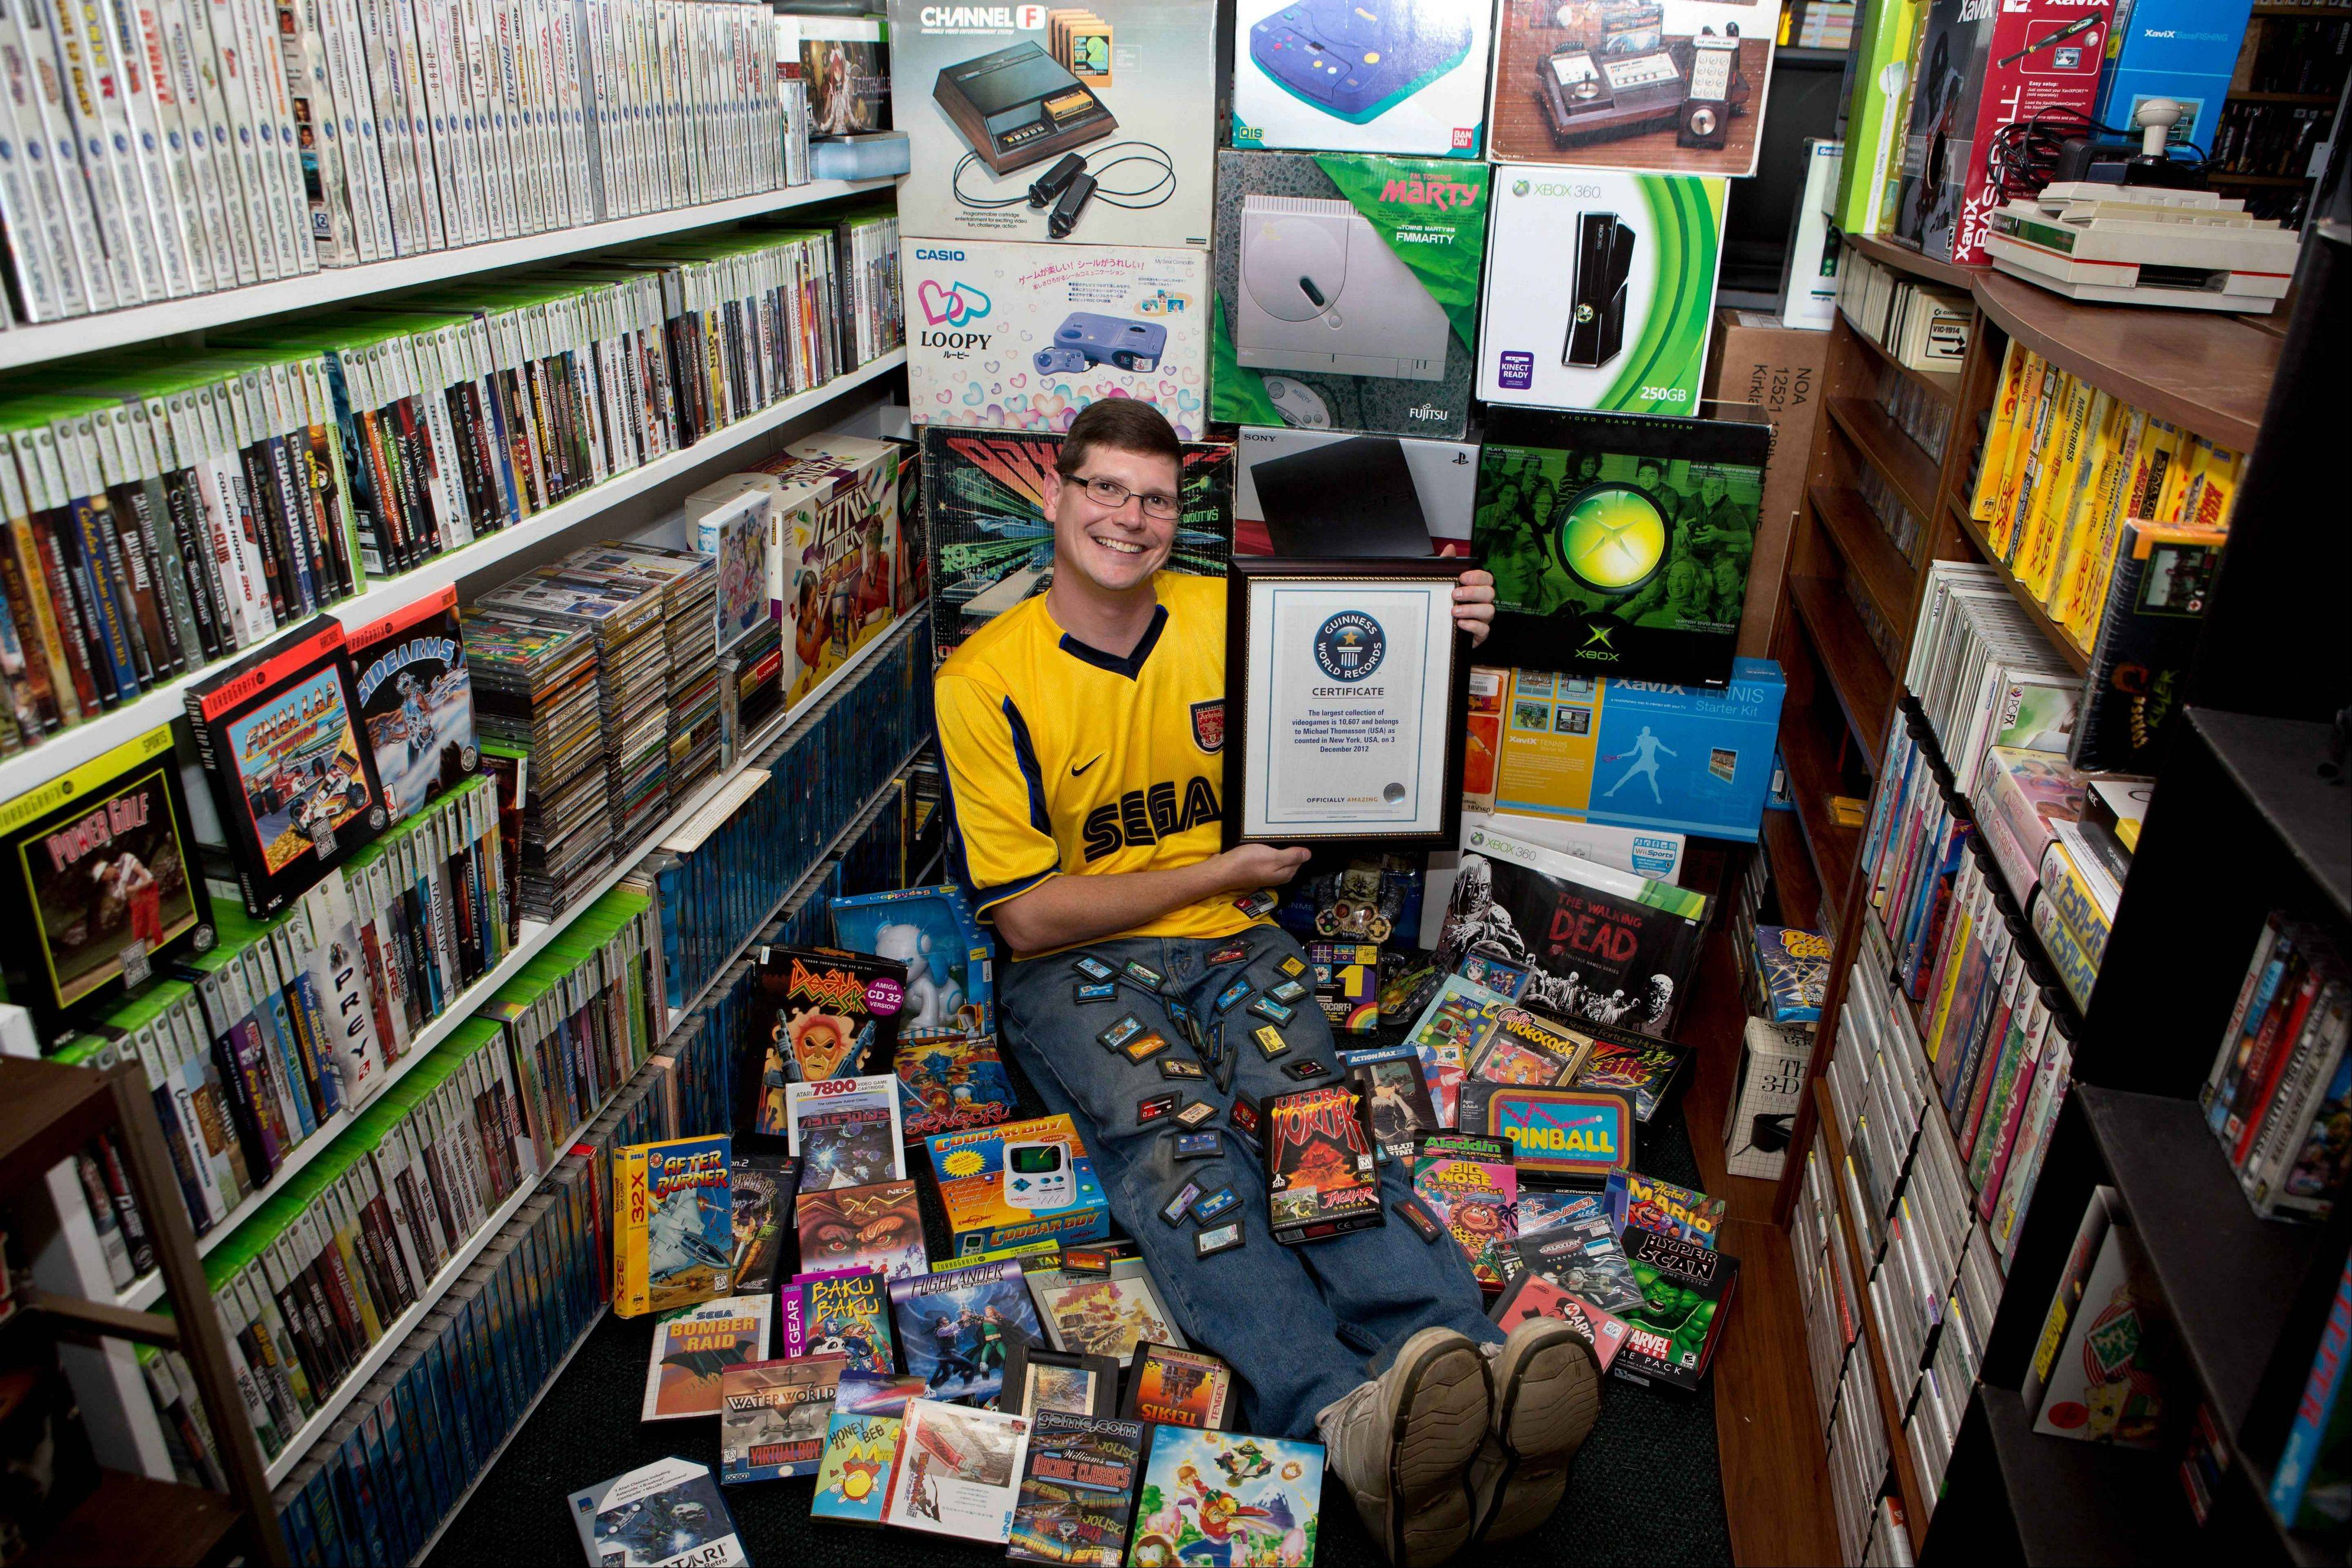 Michael Thomasson is featured in the just-released �Guinness World Records 2014 Gamer�s Edition,� for having the largest collection of video games, 10,607. The number bests the previous record holder, Richard Lecce of Florida, who had 8,616 games in 2010.